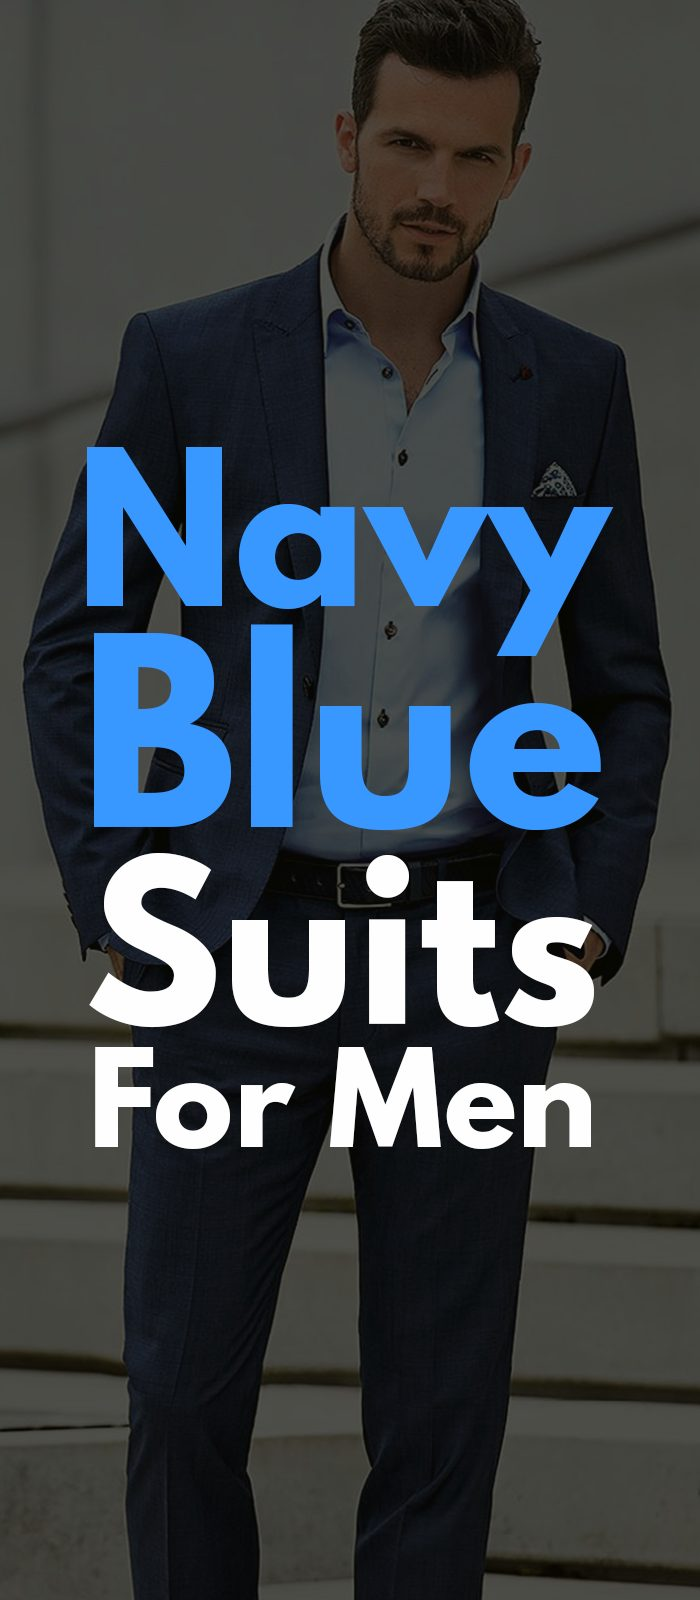 NAVY BLUE SUITS FOR MEN